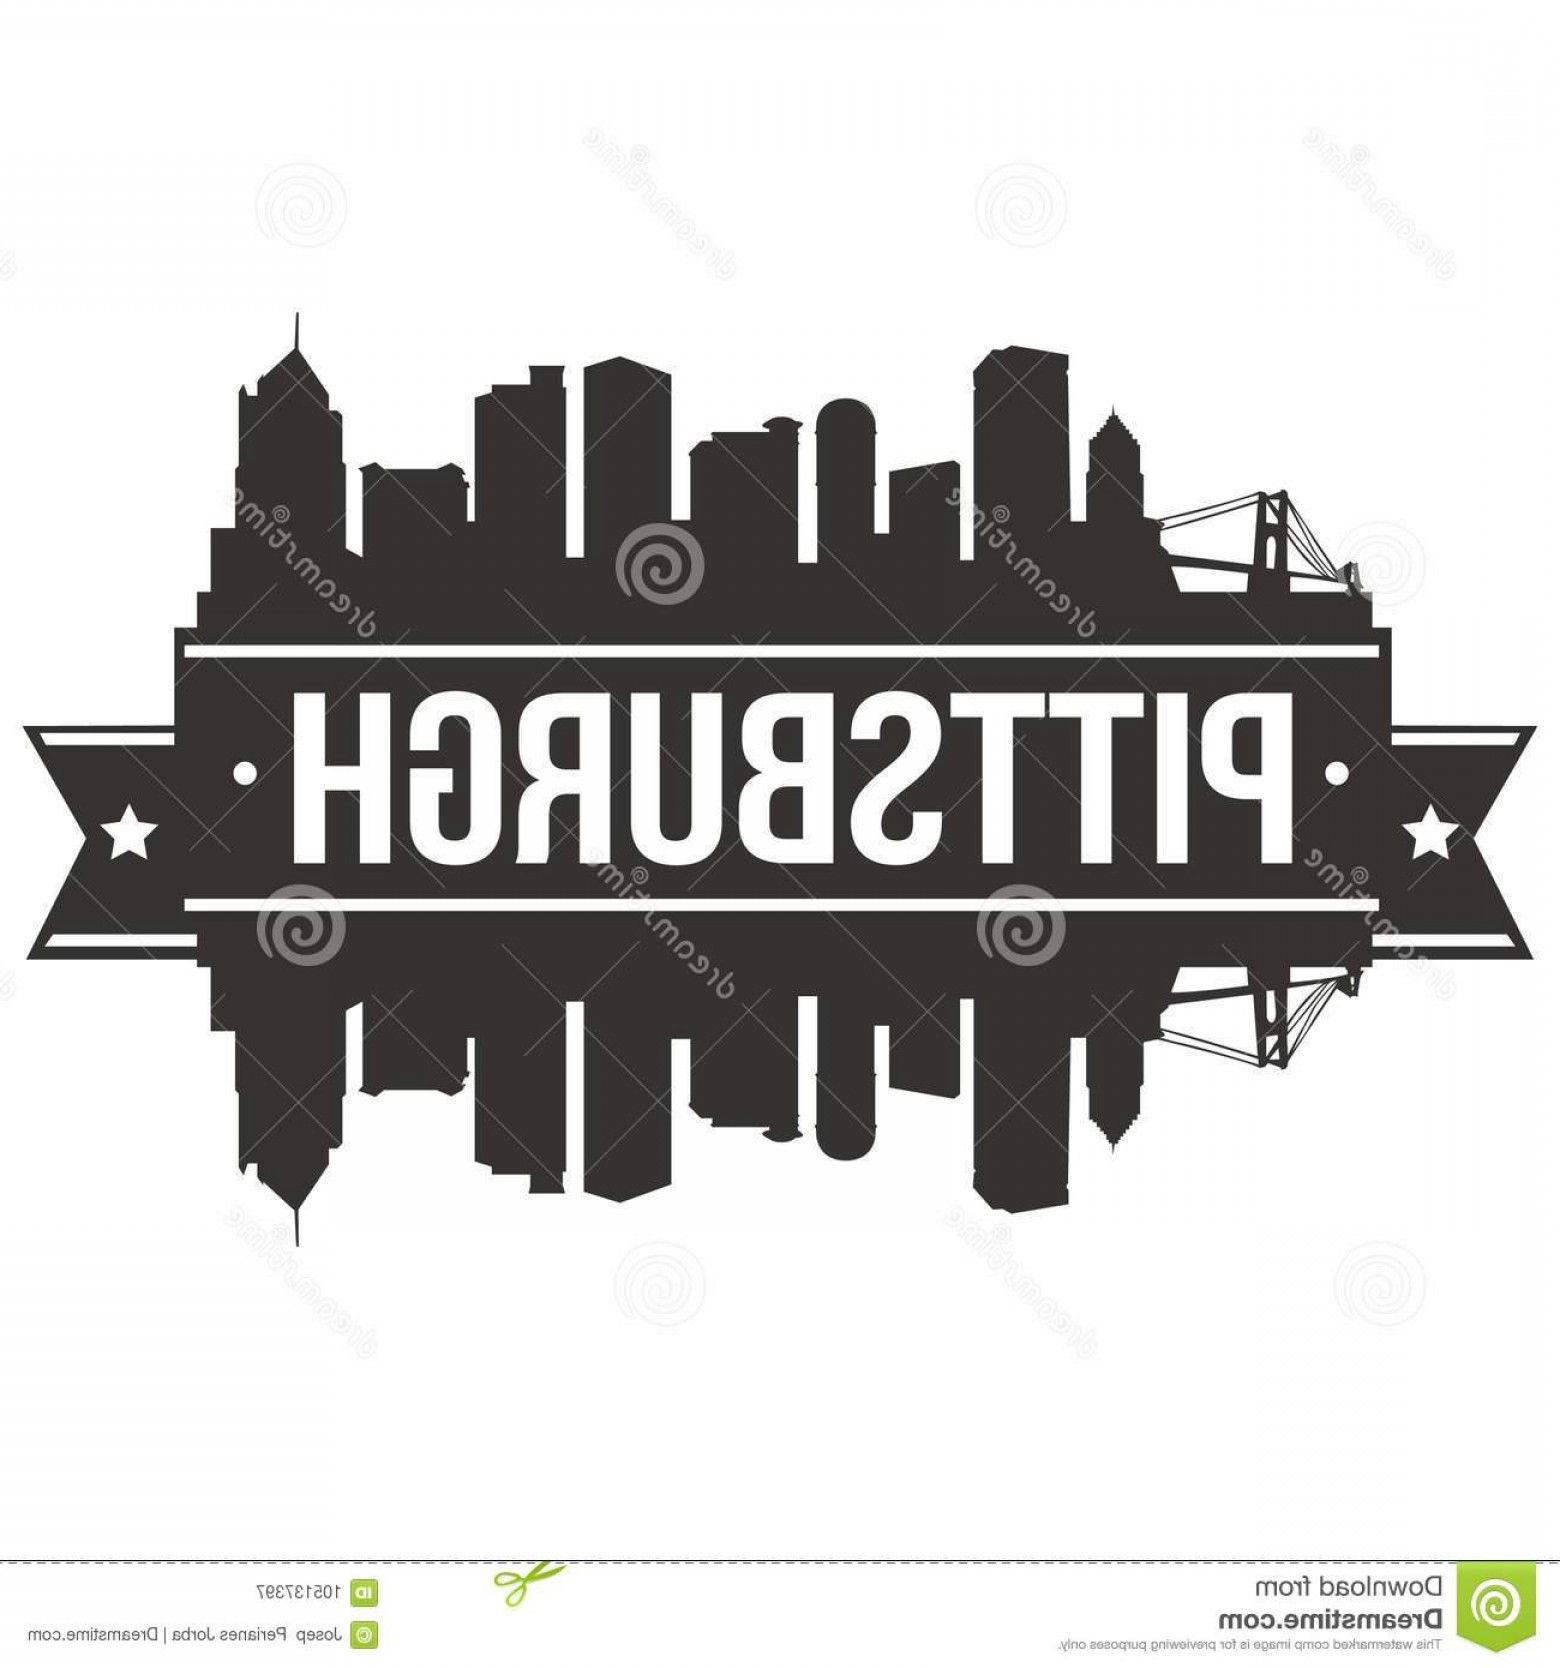 Pittsburgh City Skyline Vector: Pittsburgh Pennsylvania United States America Usa Icon Vector Art Design Skyline Flat City Silhouette Editable Template Image